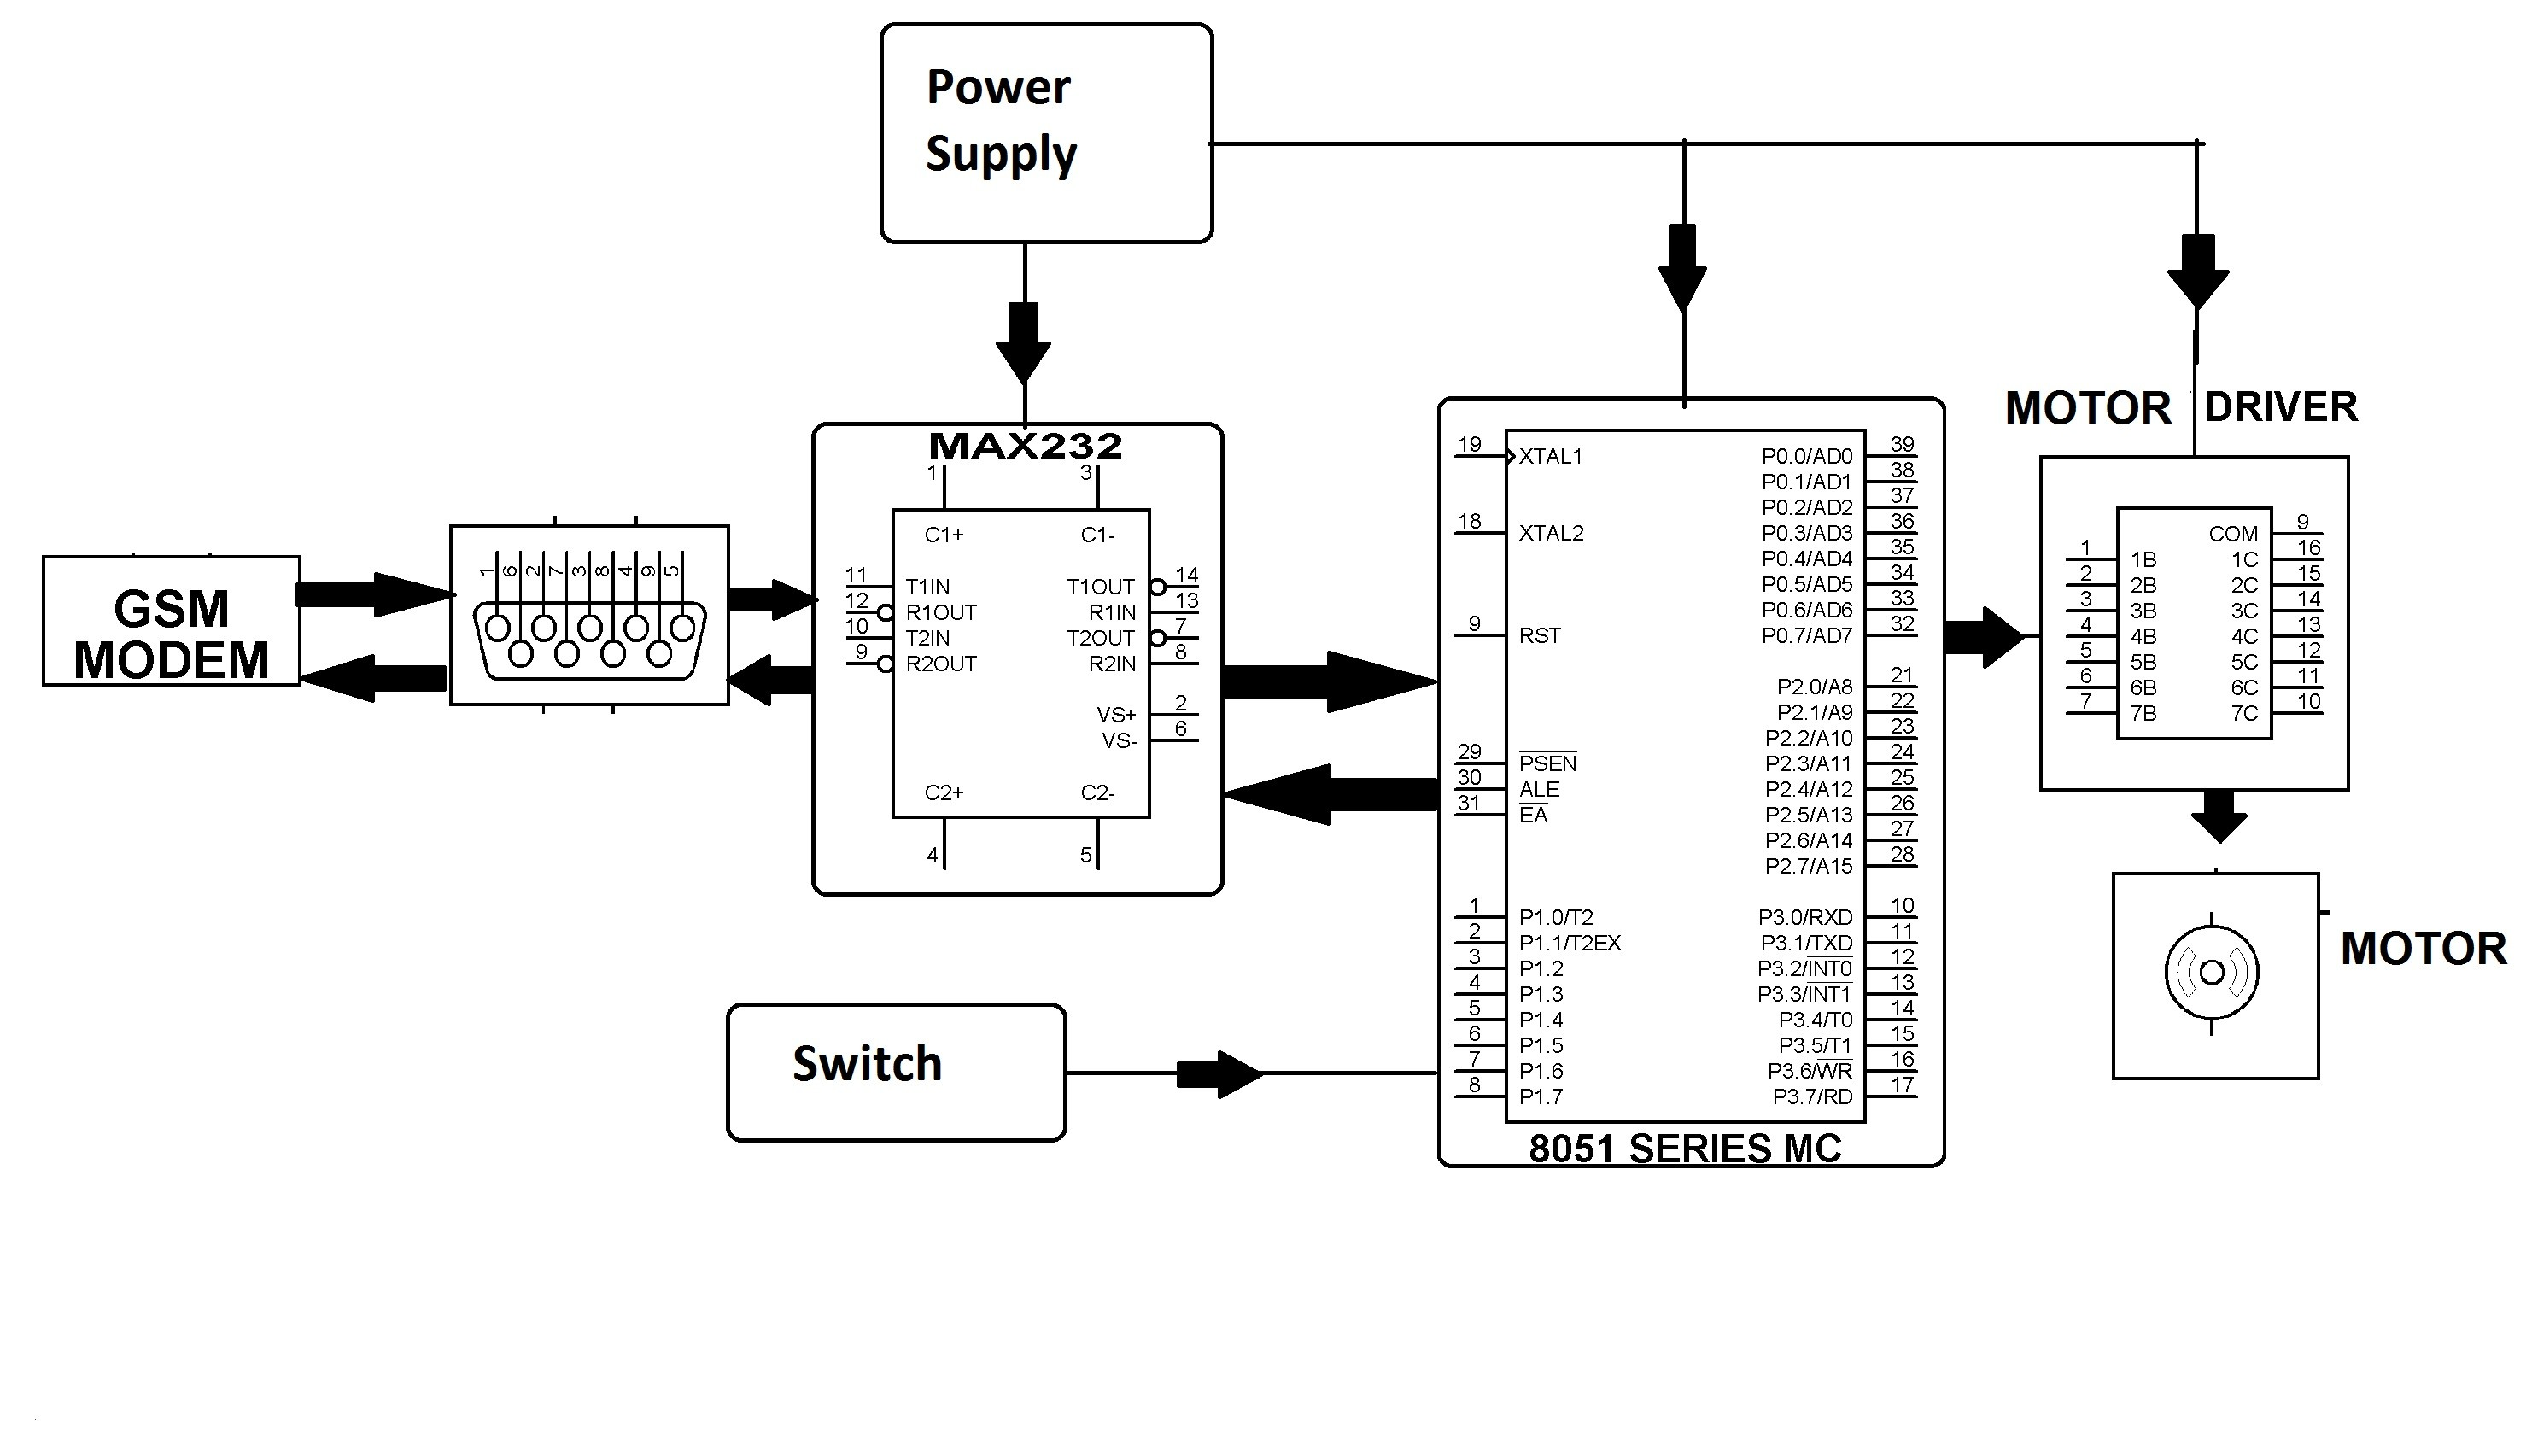 Diagram Of Engine Block Control System Block Diagram Unique Vehicle theft Detection Of Diagram Of Engine Block